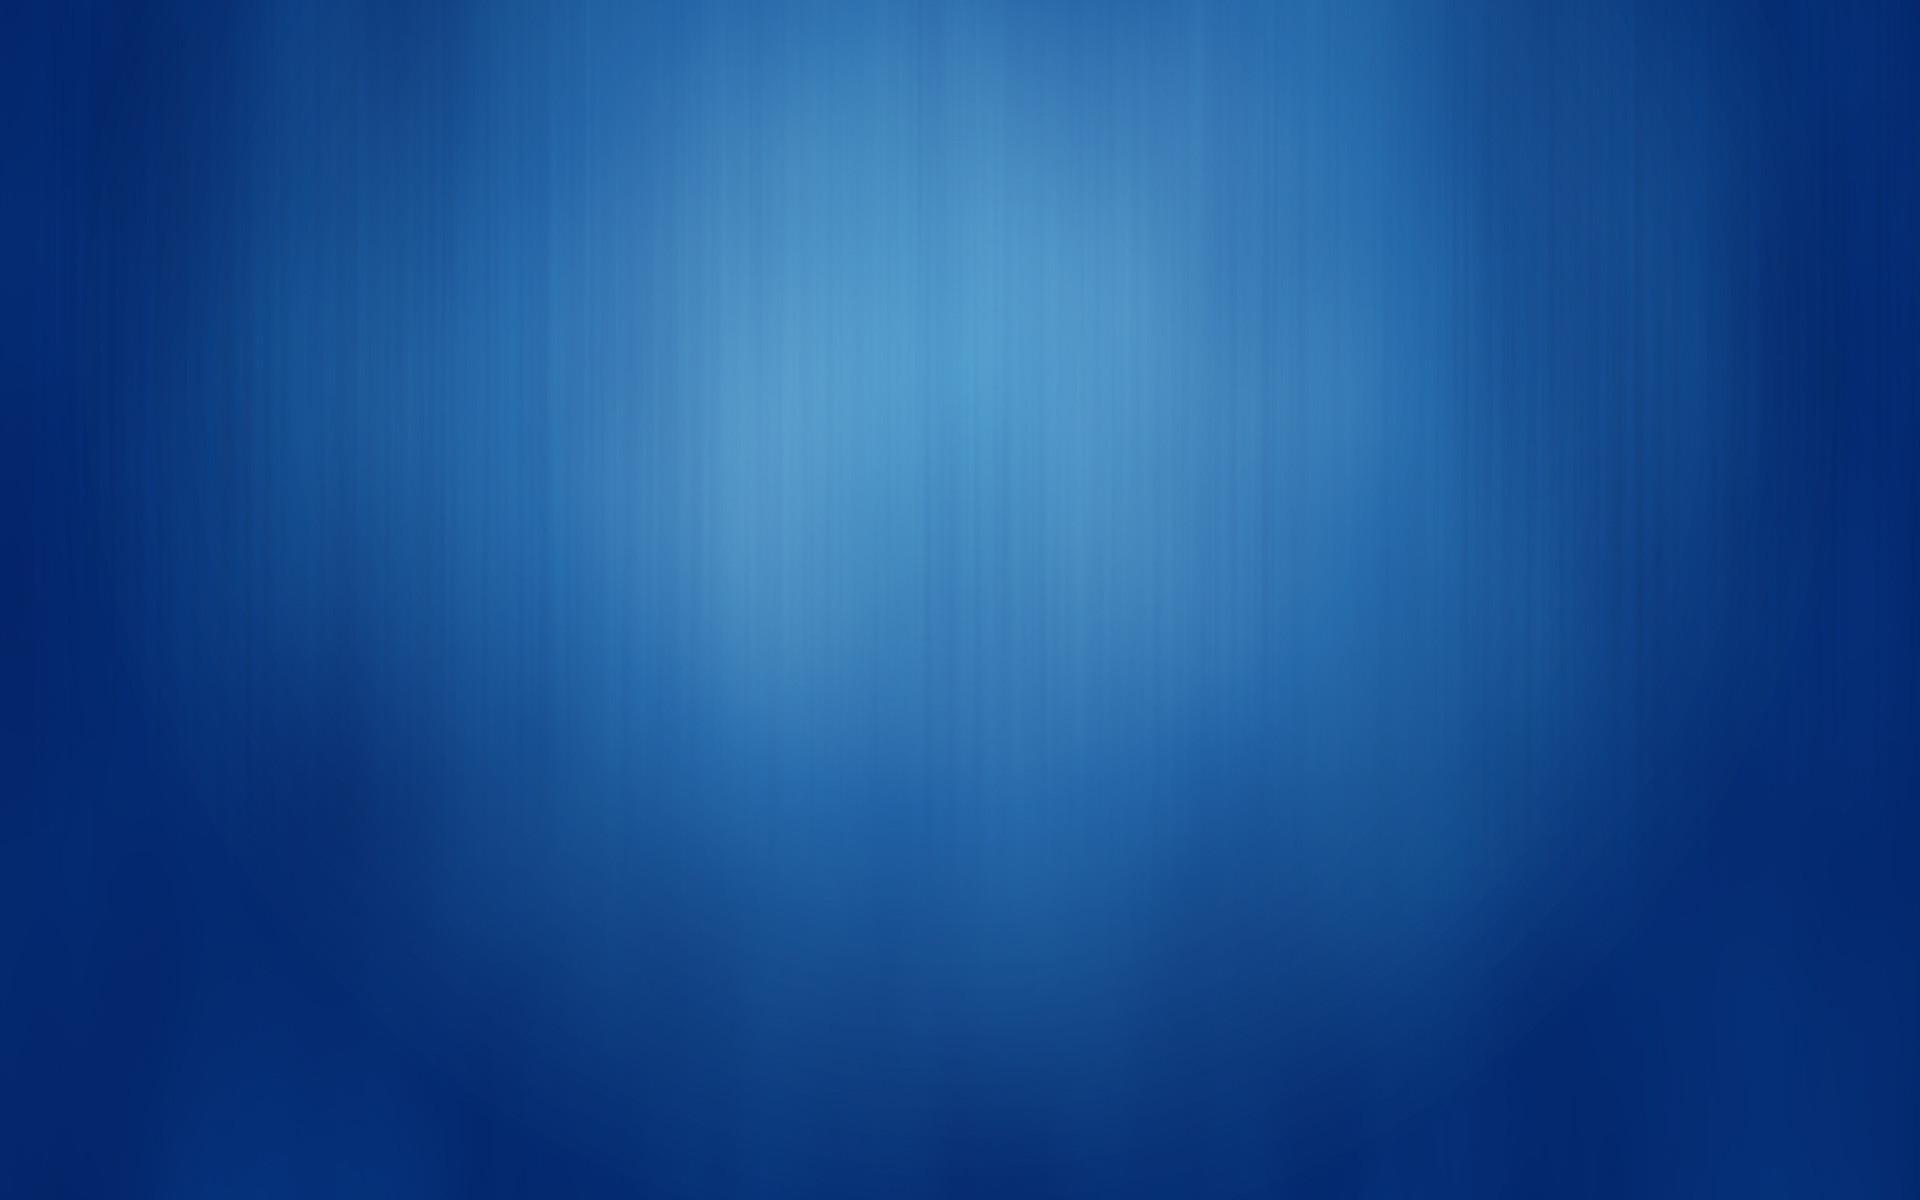 Abstract Blue   Background Wallpaper HD By Iarnoldz